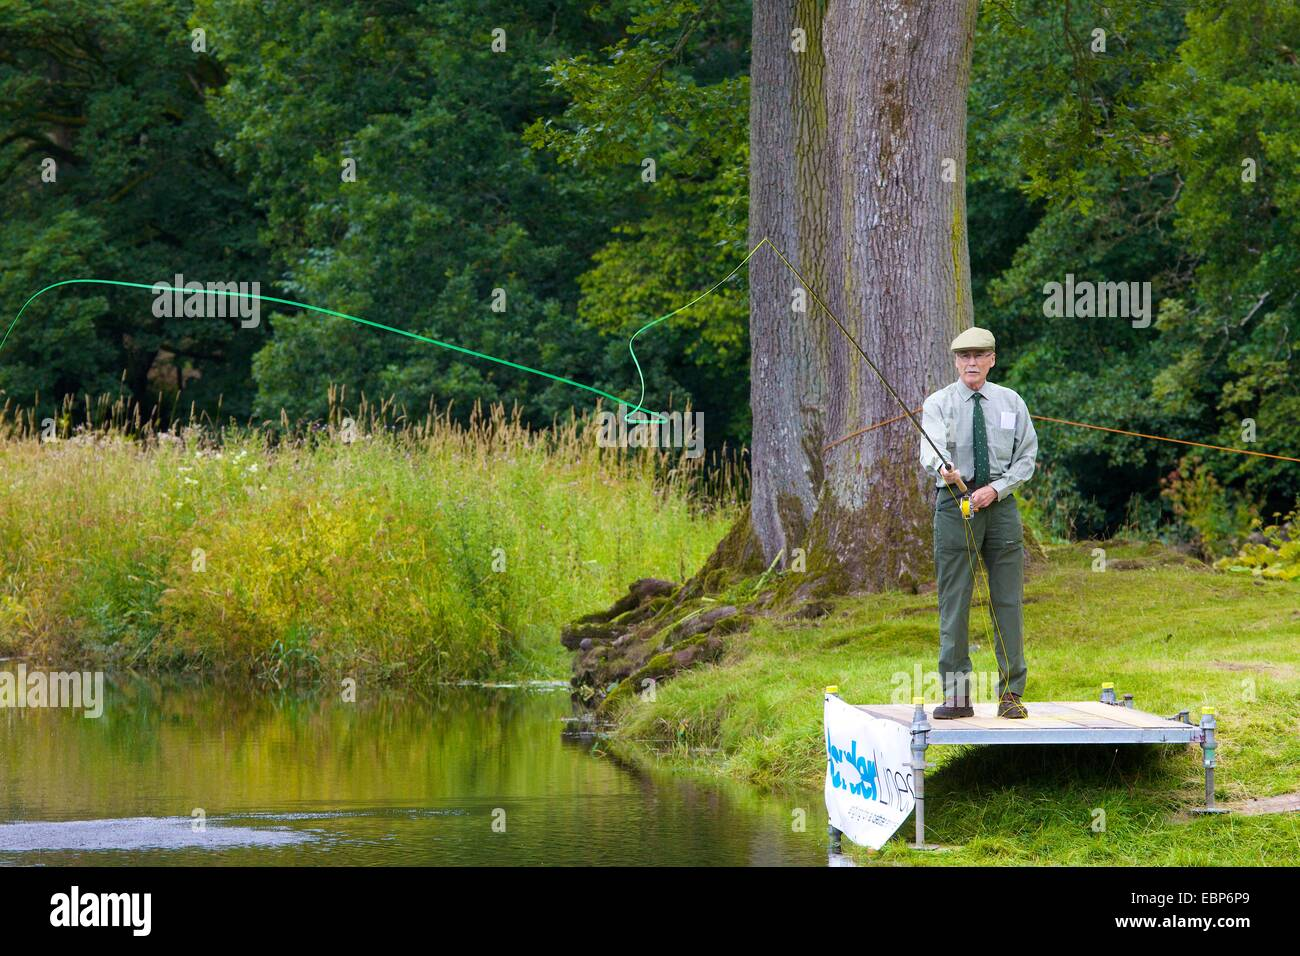 Fly fishing demonstration, Lowther Show, Lowther Estate, Lowther, Penrith, Cumbria. - Stock Image